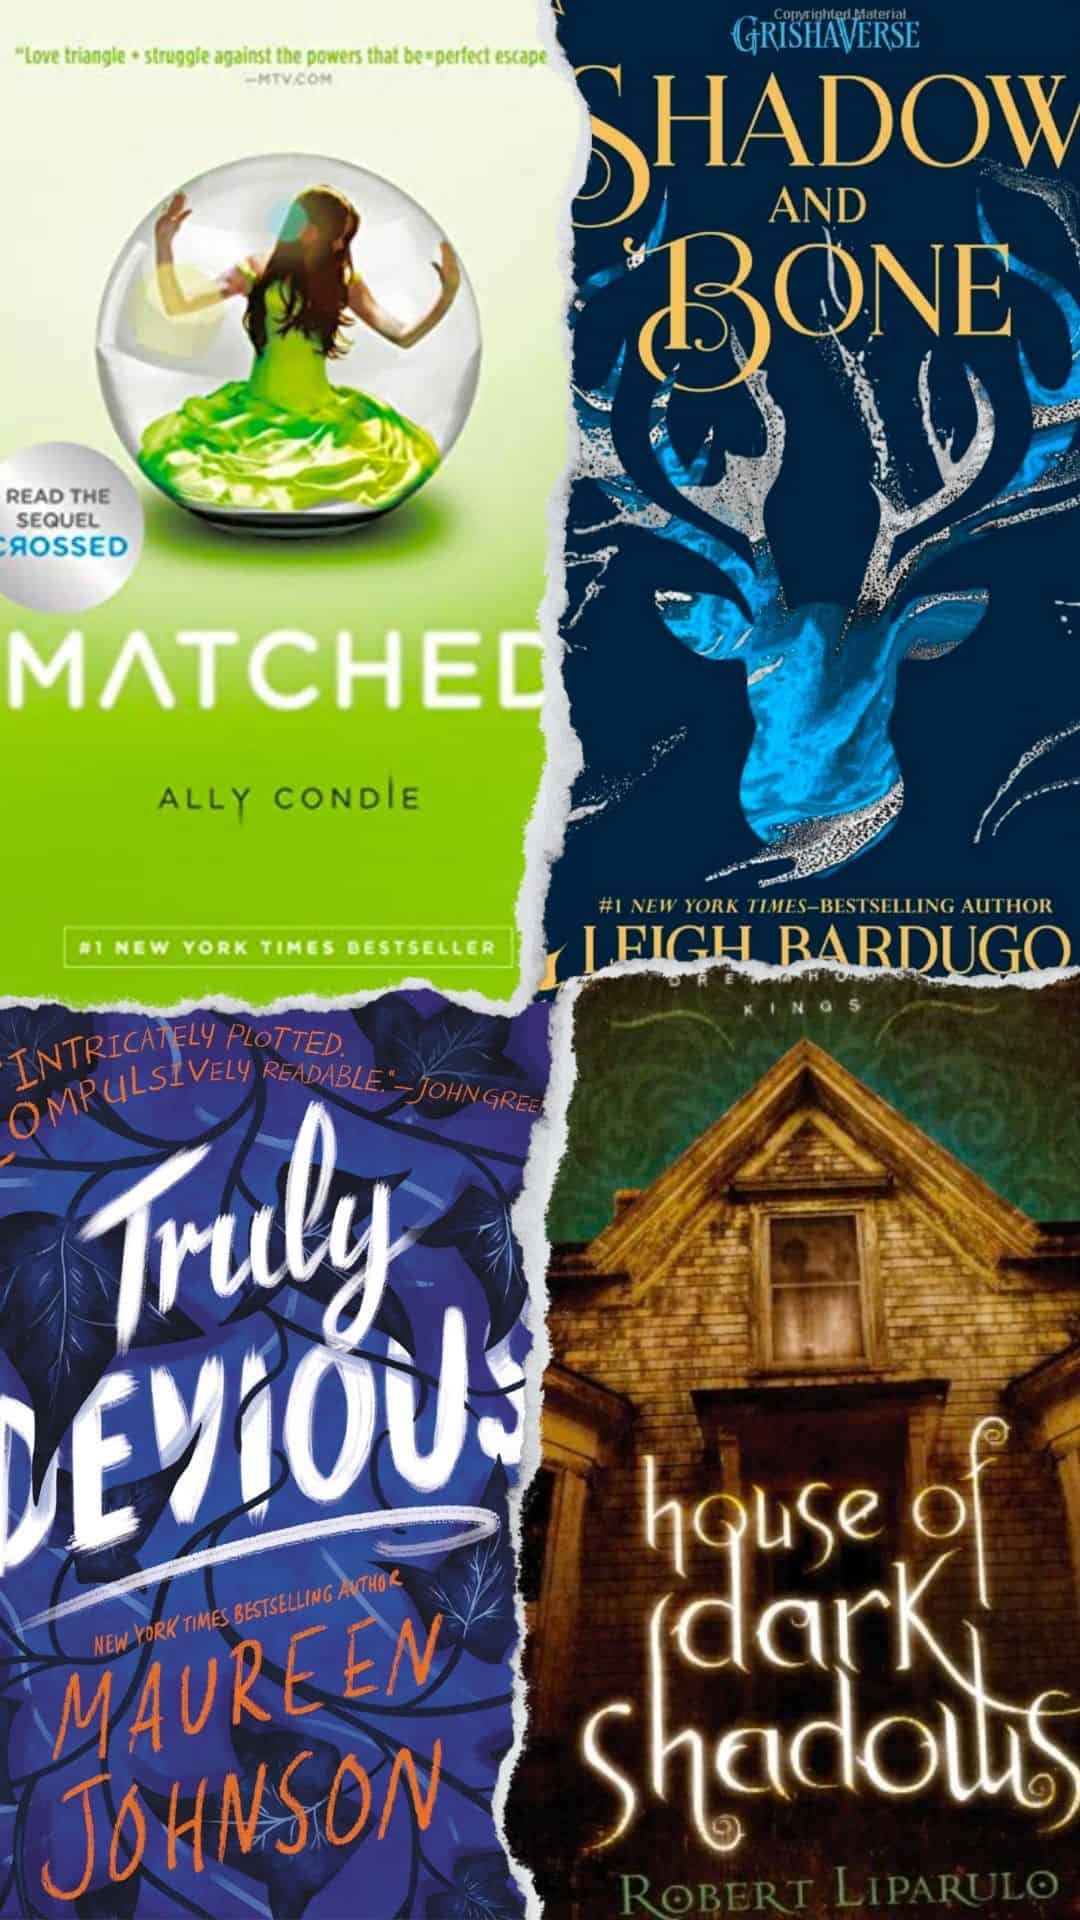 Book series for teens including Matched, Truly Devious, Shadow and Bone, and House of Darkness book covers.